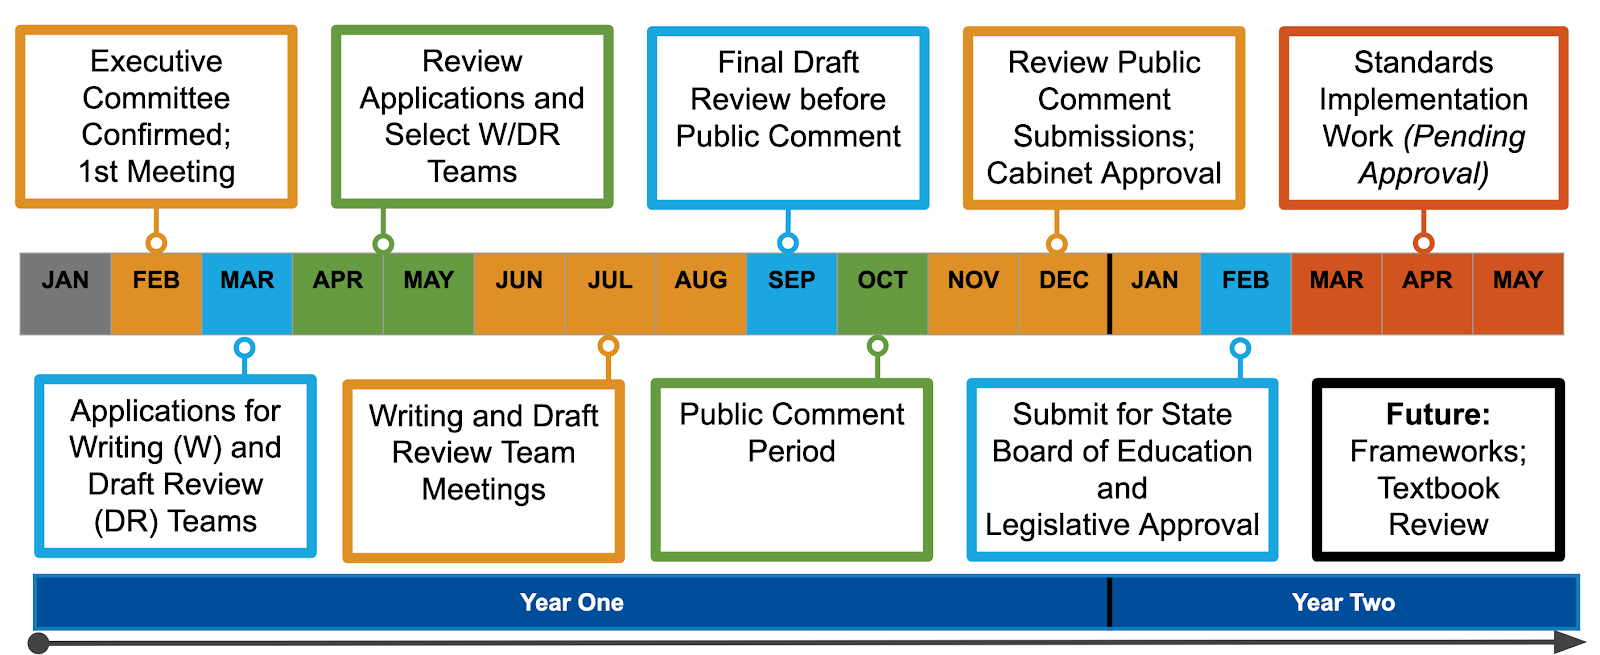 The timeline for a typical Standards cycle starts in February of year one and concludes around March of year two.